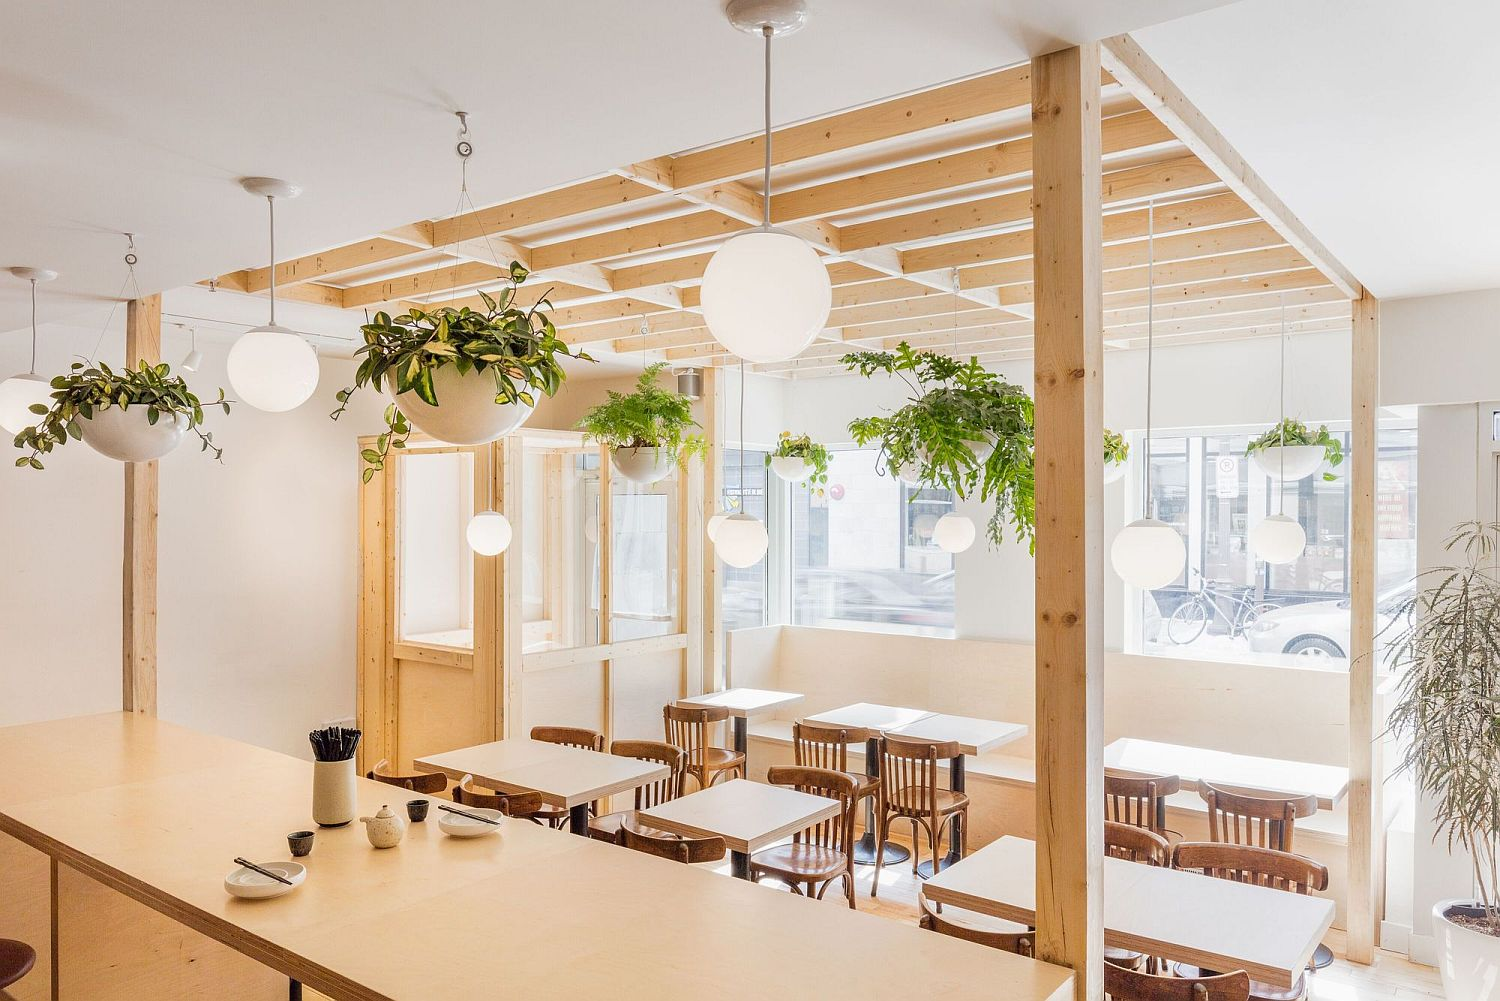 Hanging-plants-add-greenery-to-the-cafe-interior